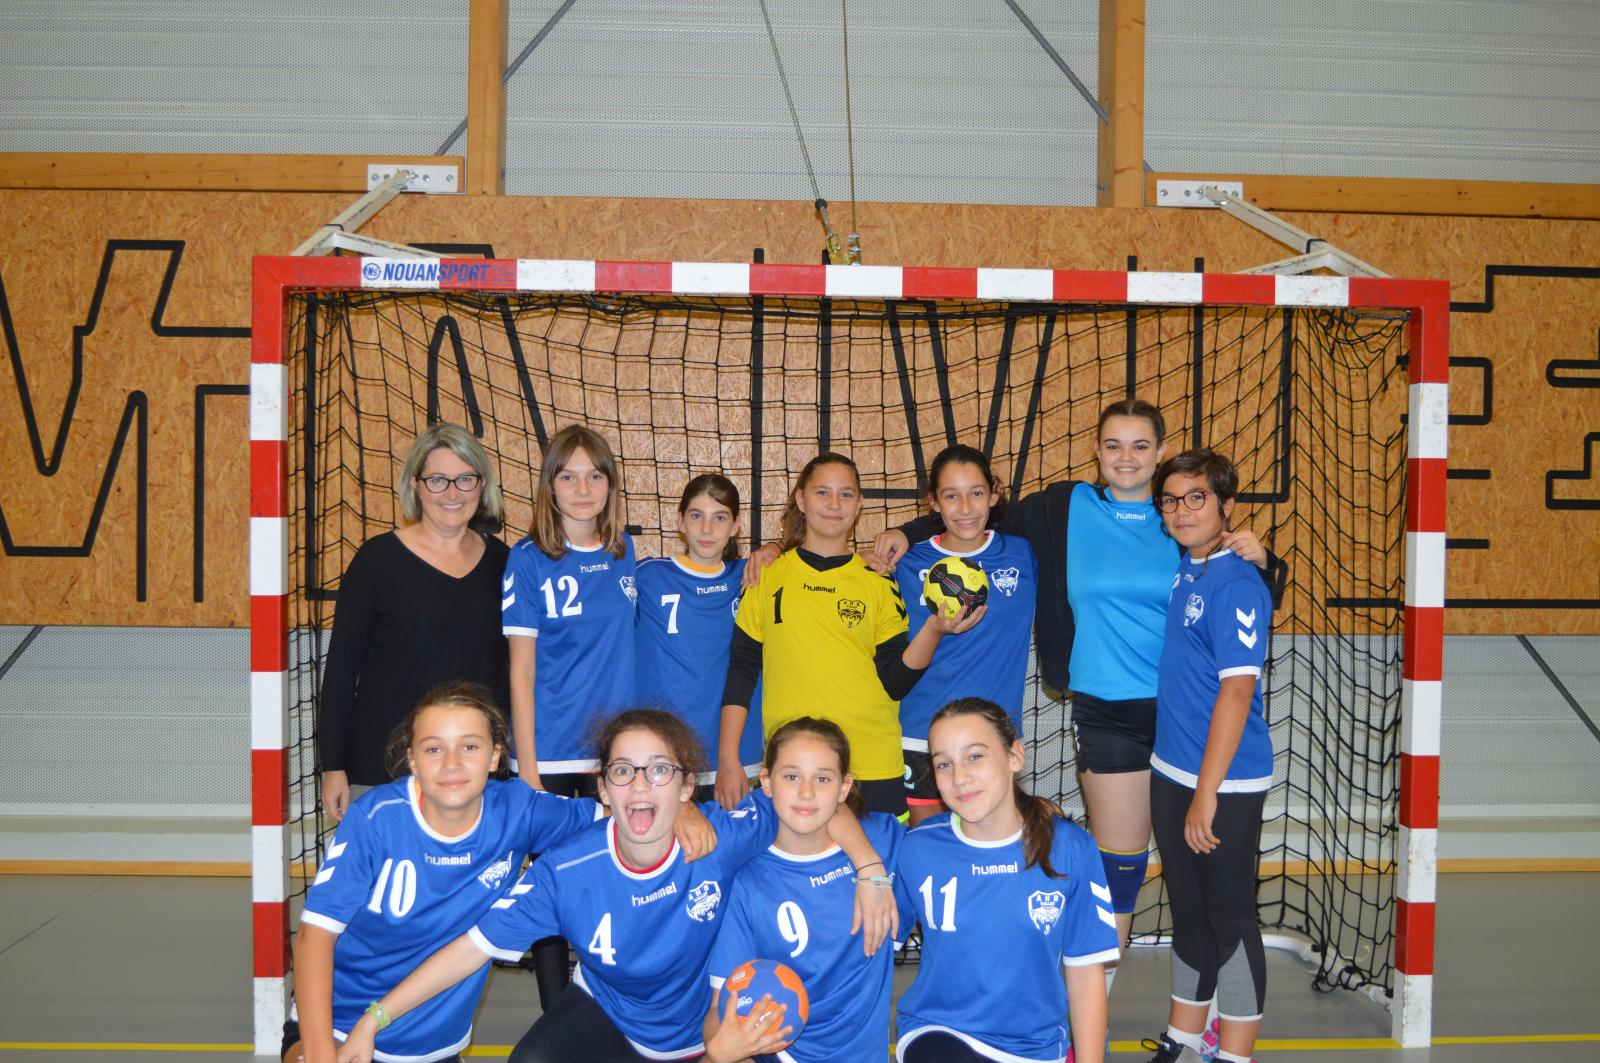 VALLET -14 F - Association Handball Vallet